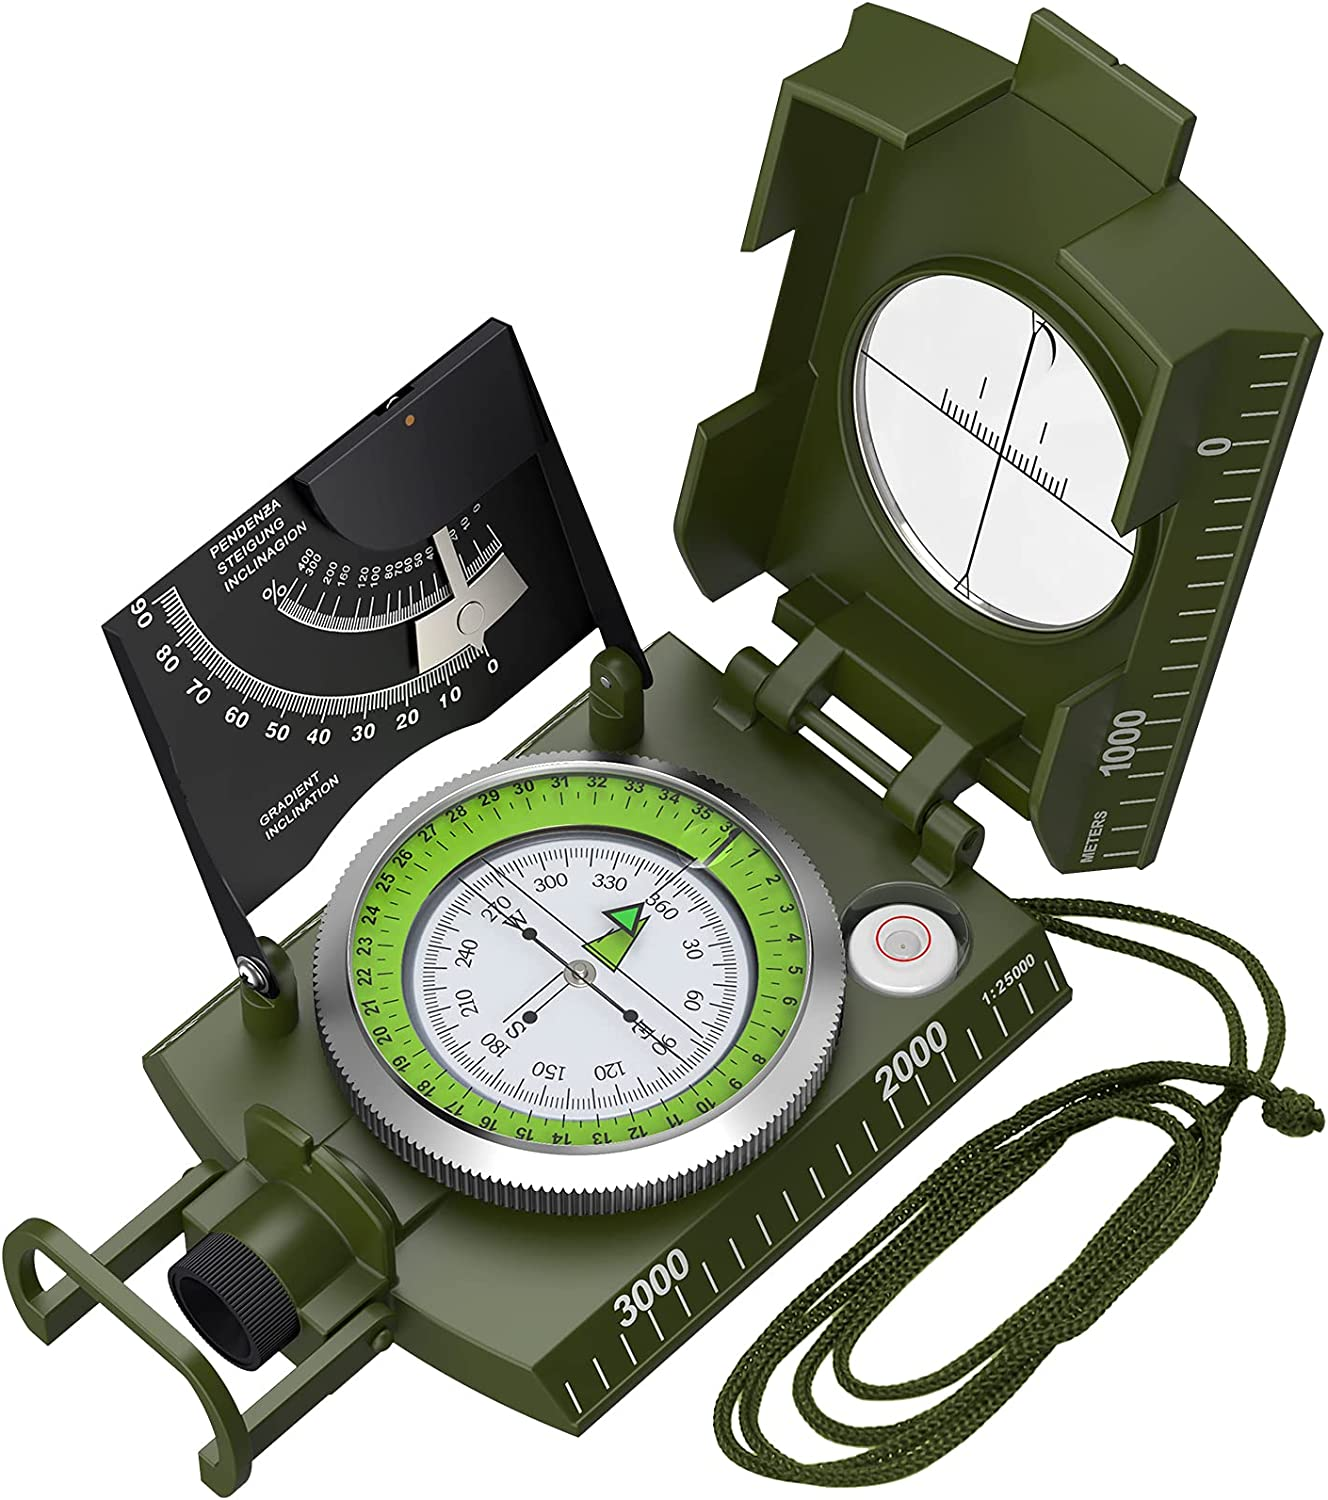 Proster 5 ☆ popular IP65 Challenge the lowest price Compass with Professional Sighting Clinometer Milit